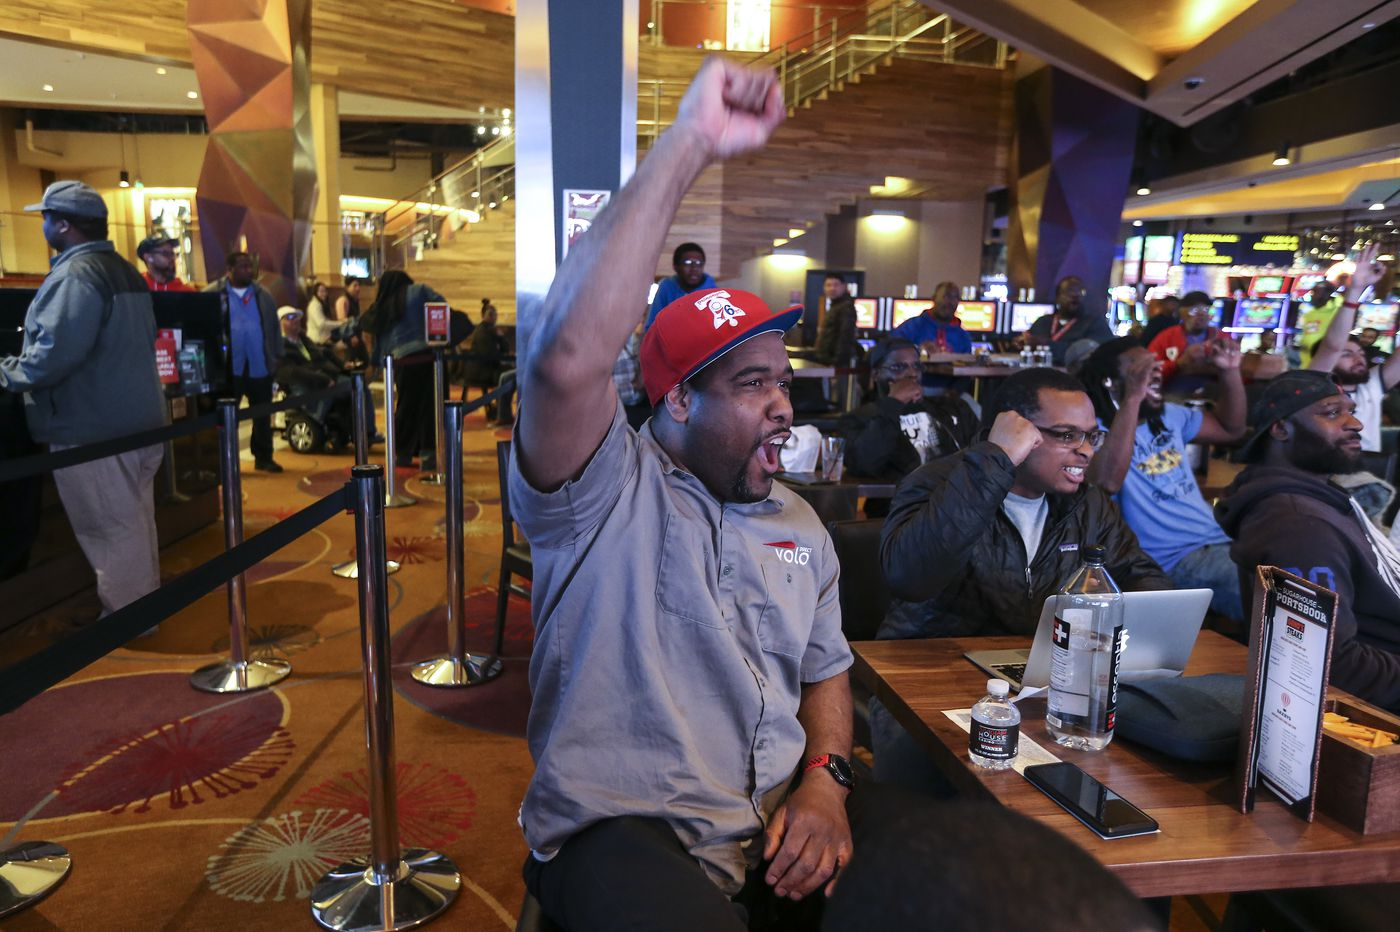 Sports betting became legal one year ago, and some experts think New Jersey could someday overtake Las Vegas